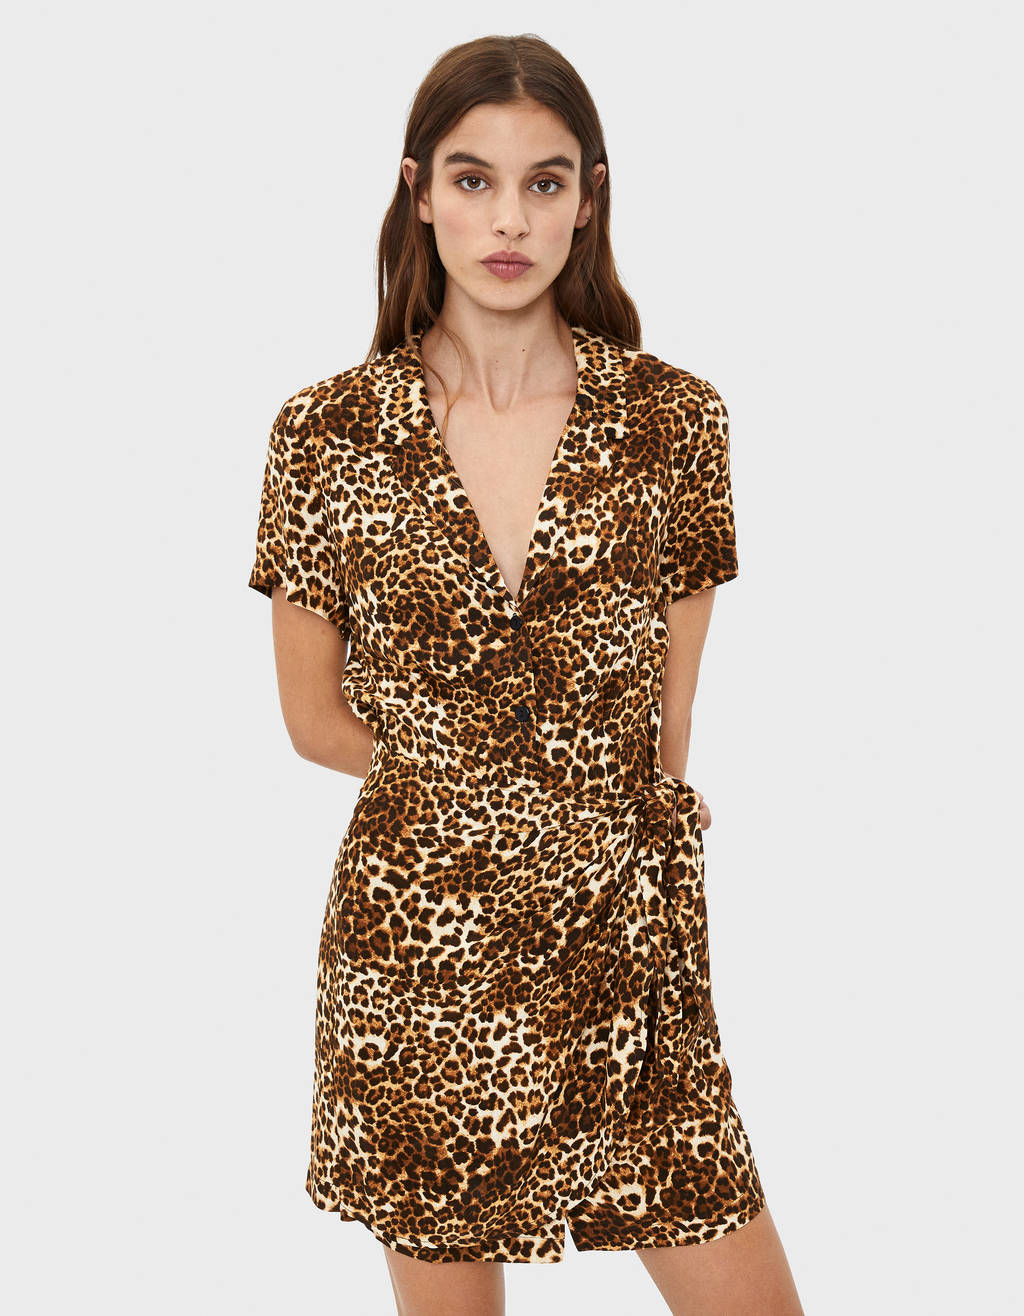 huge discount a1386 a4477 Vestiti donna - Autunno 2019 | Bershka